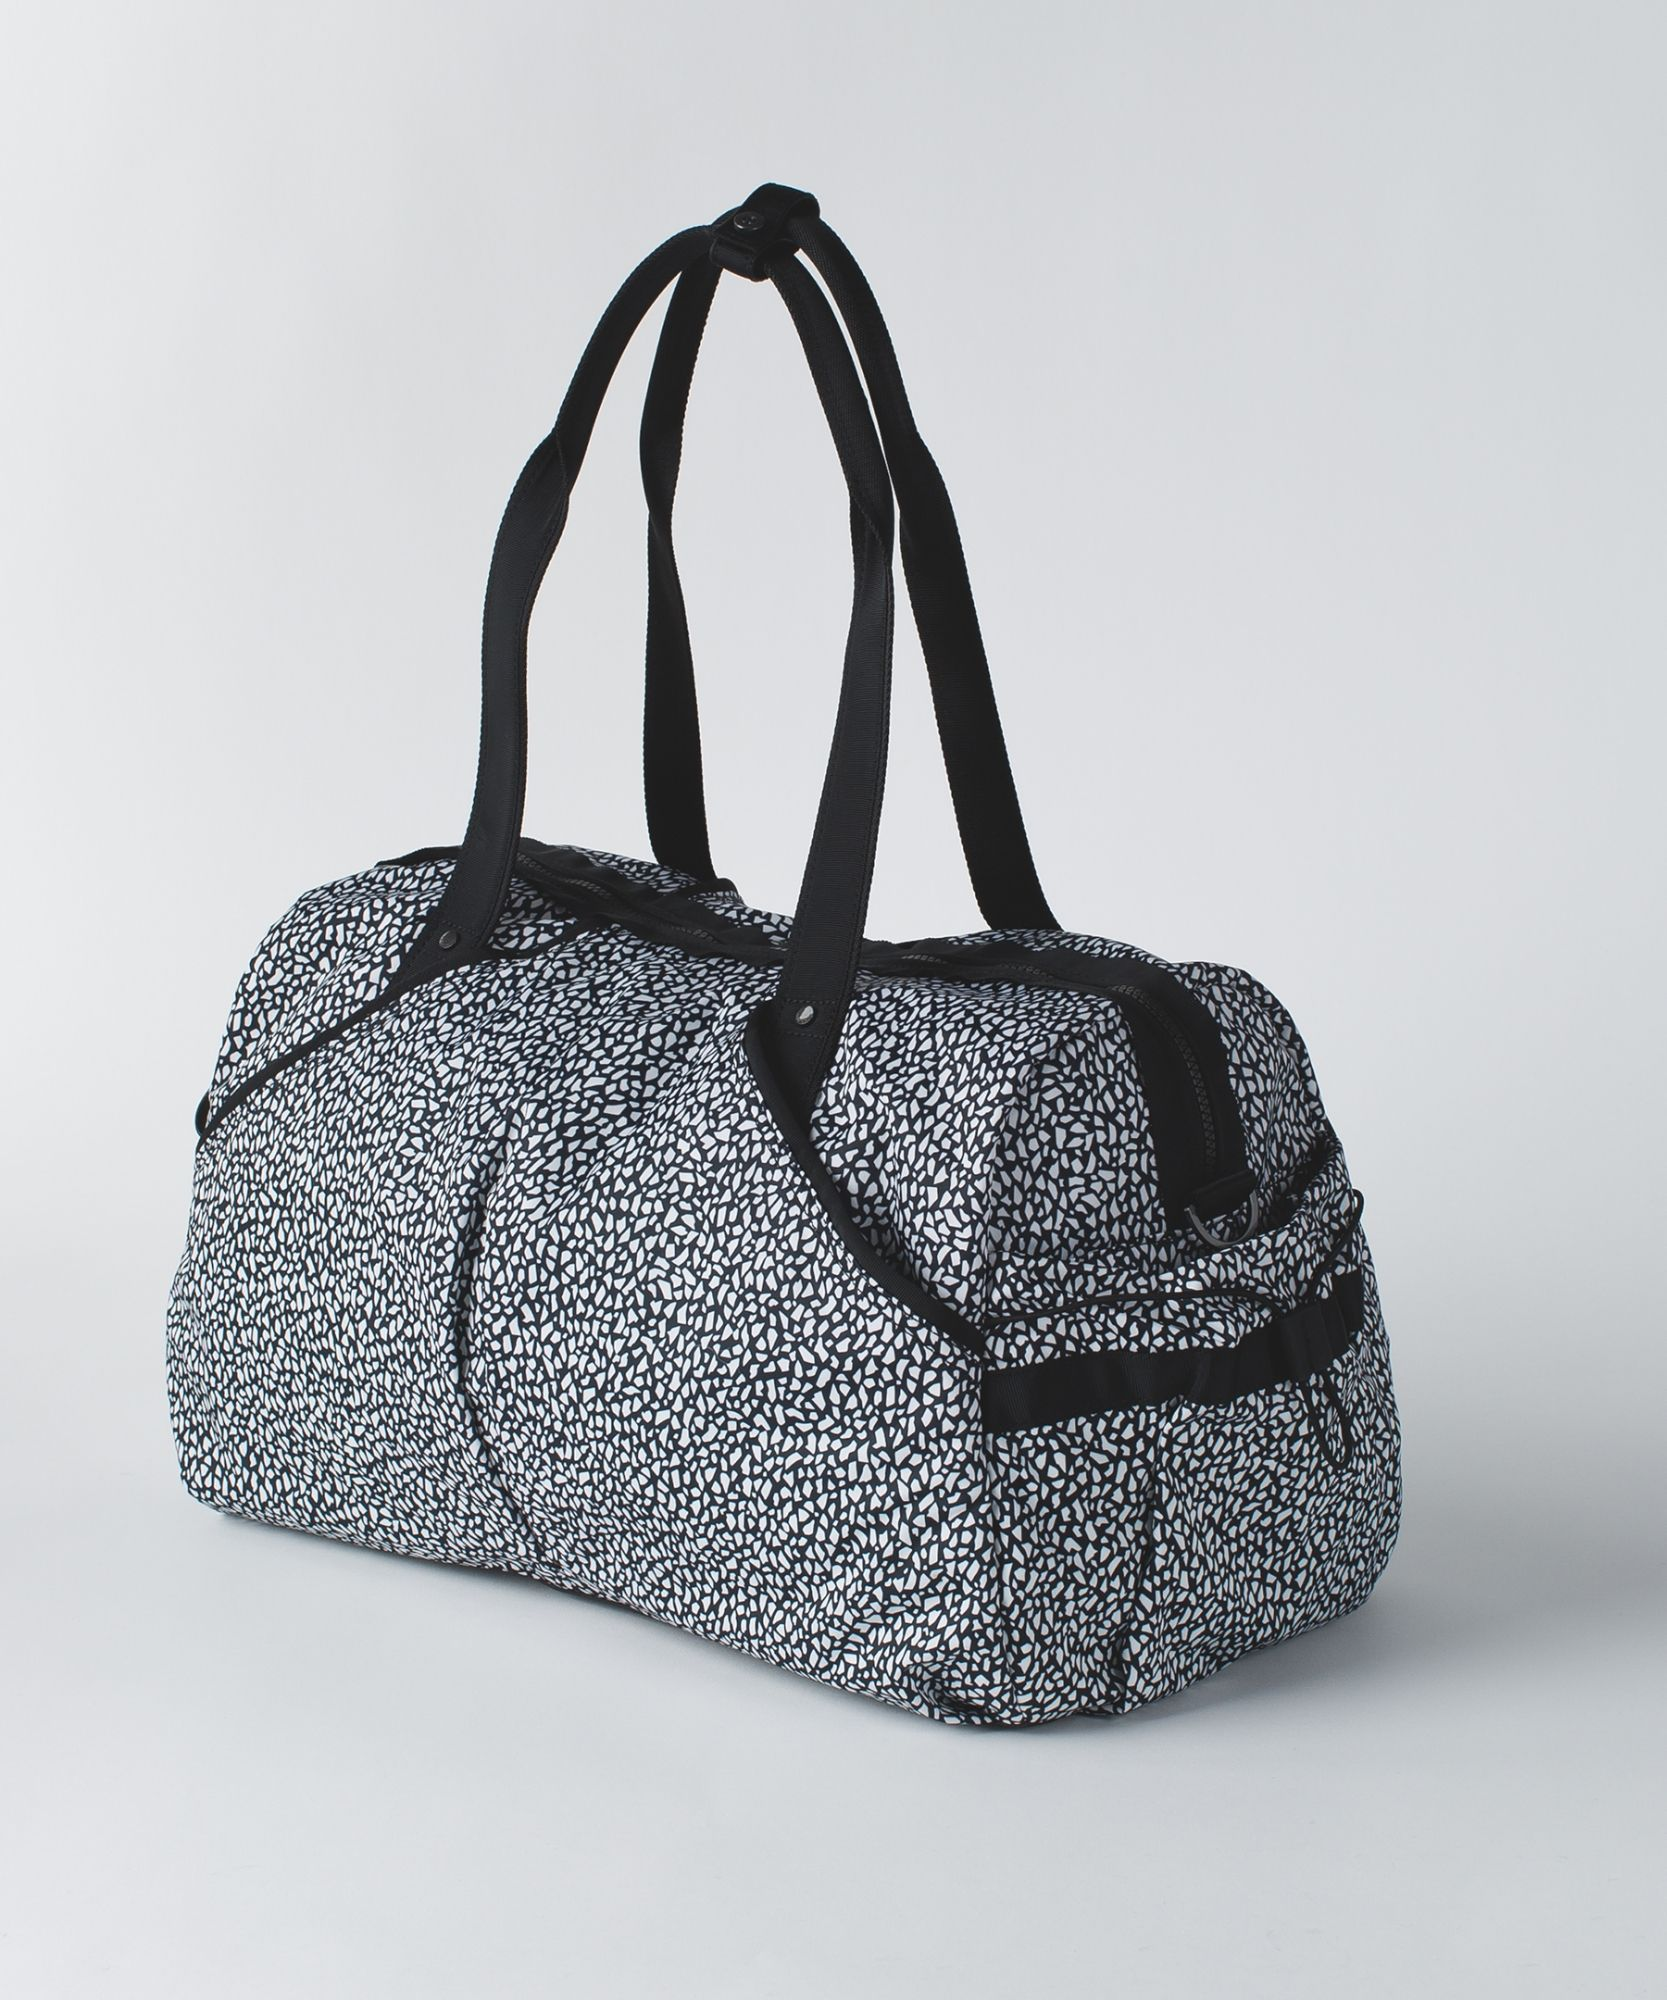 totes designed yoga extra storage with mat pin all plenty mile gym bags bag holder lululemon duffel of for